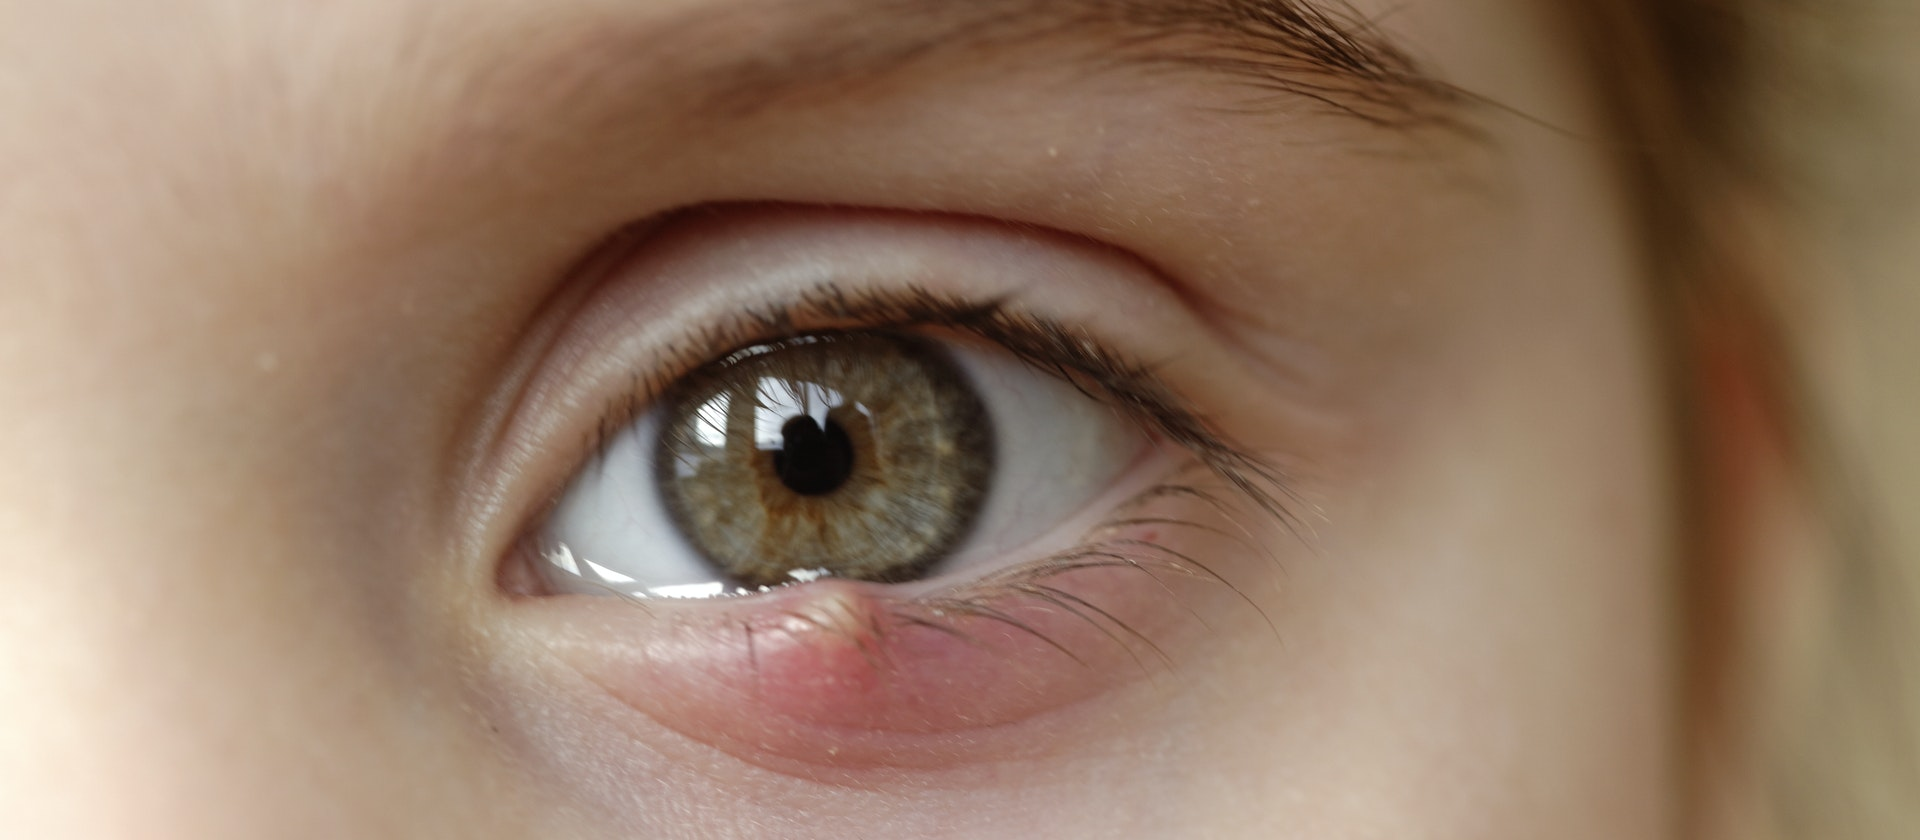 Redness Around The Eye Symptoms Causes Common Questions Buoy